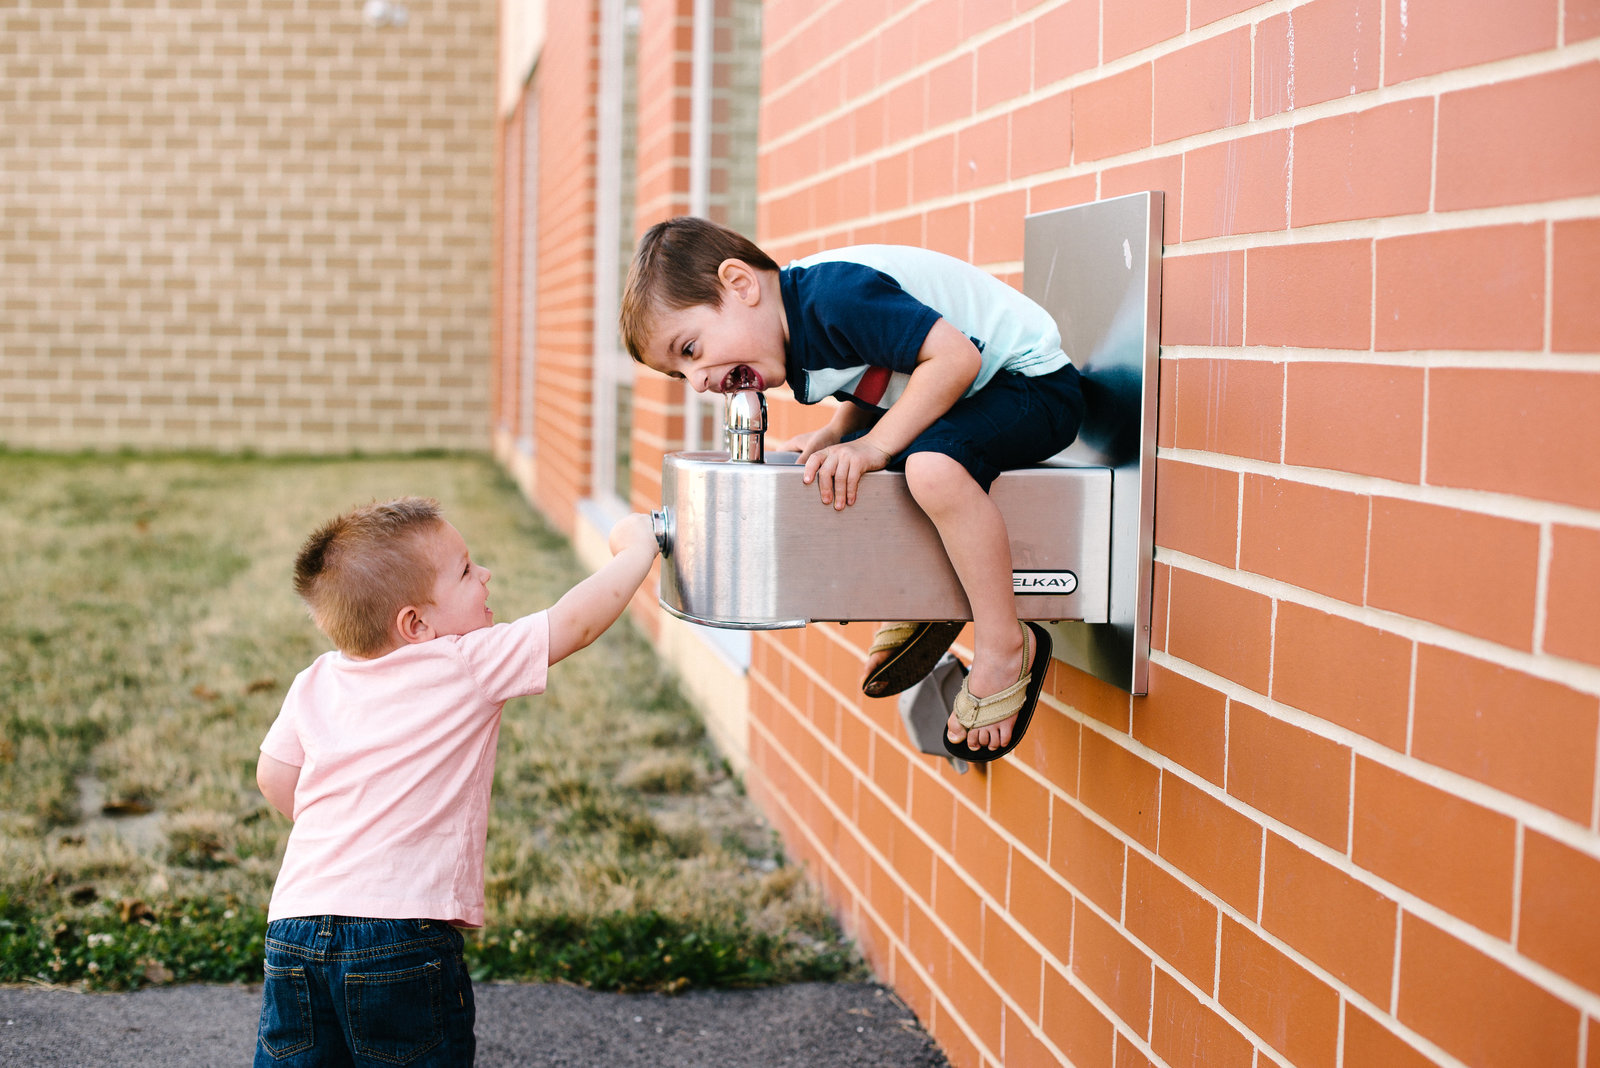 Austintown OH toddler boys drinking from water fountain on playground